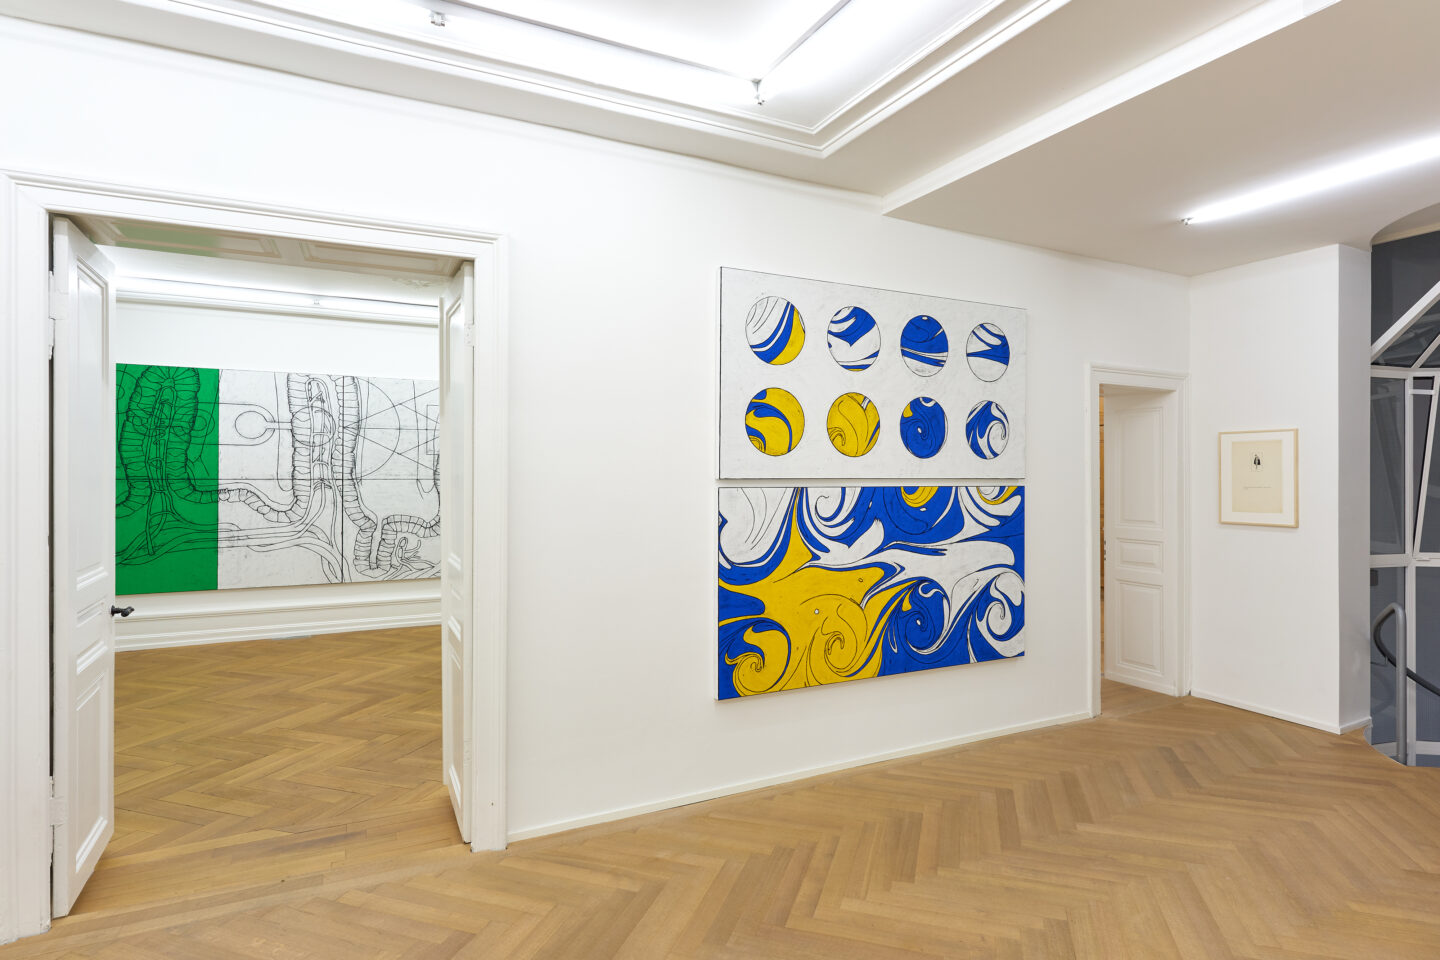 Exhibition View Matt Mullican Soloshow «Representing the Five Worlds - 50 Years of Work» at Mai 36 Galerie, Zurich, 2020 / Courtesy: the artist and Mai 36 Galerie